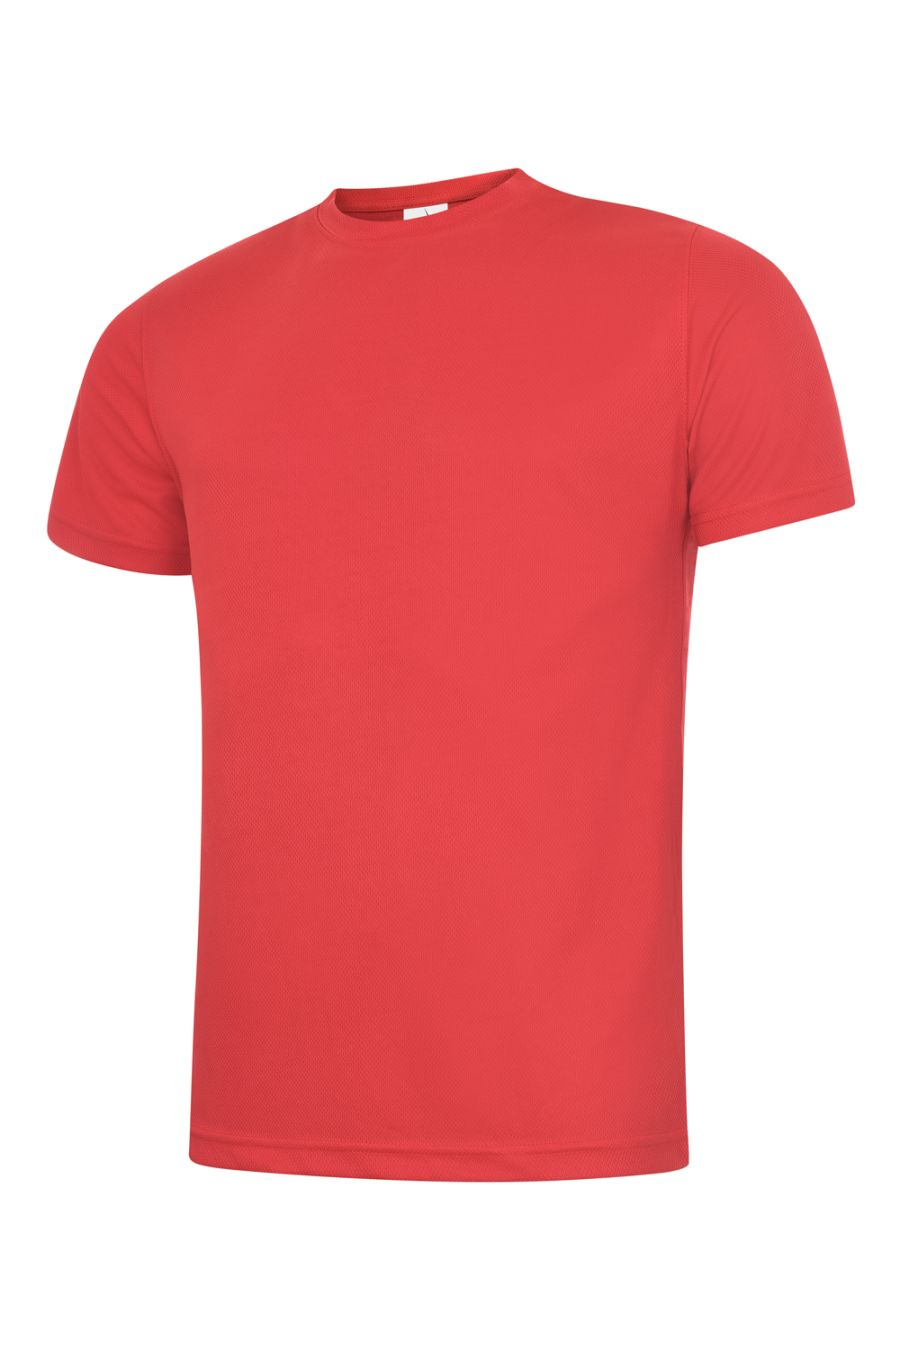 10x Printed Sports/Running Tee Shirts - Uneek - ONLY £99 ex-vat